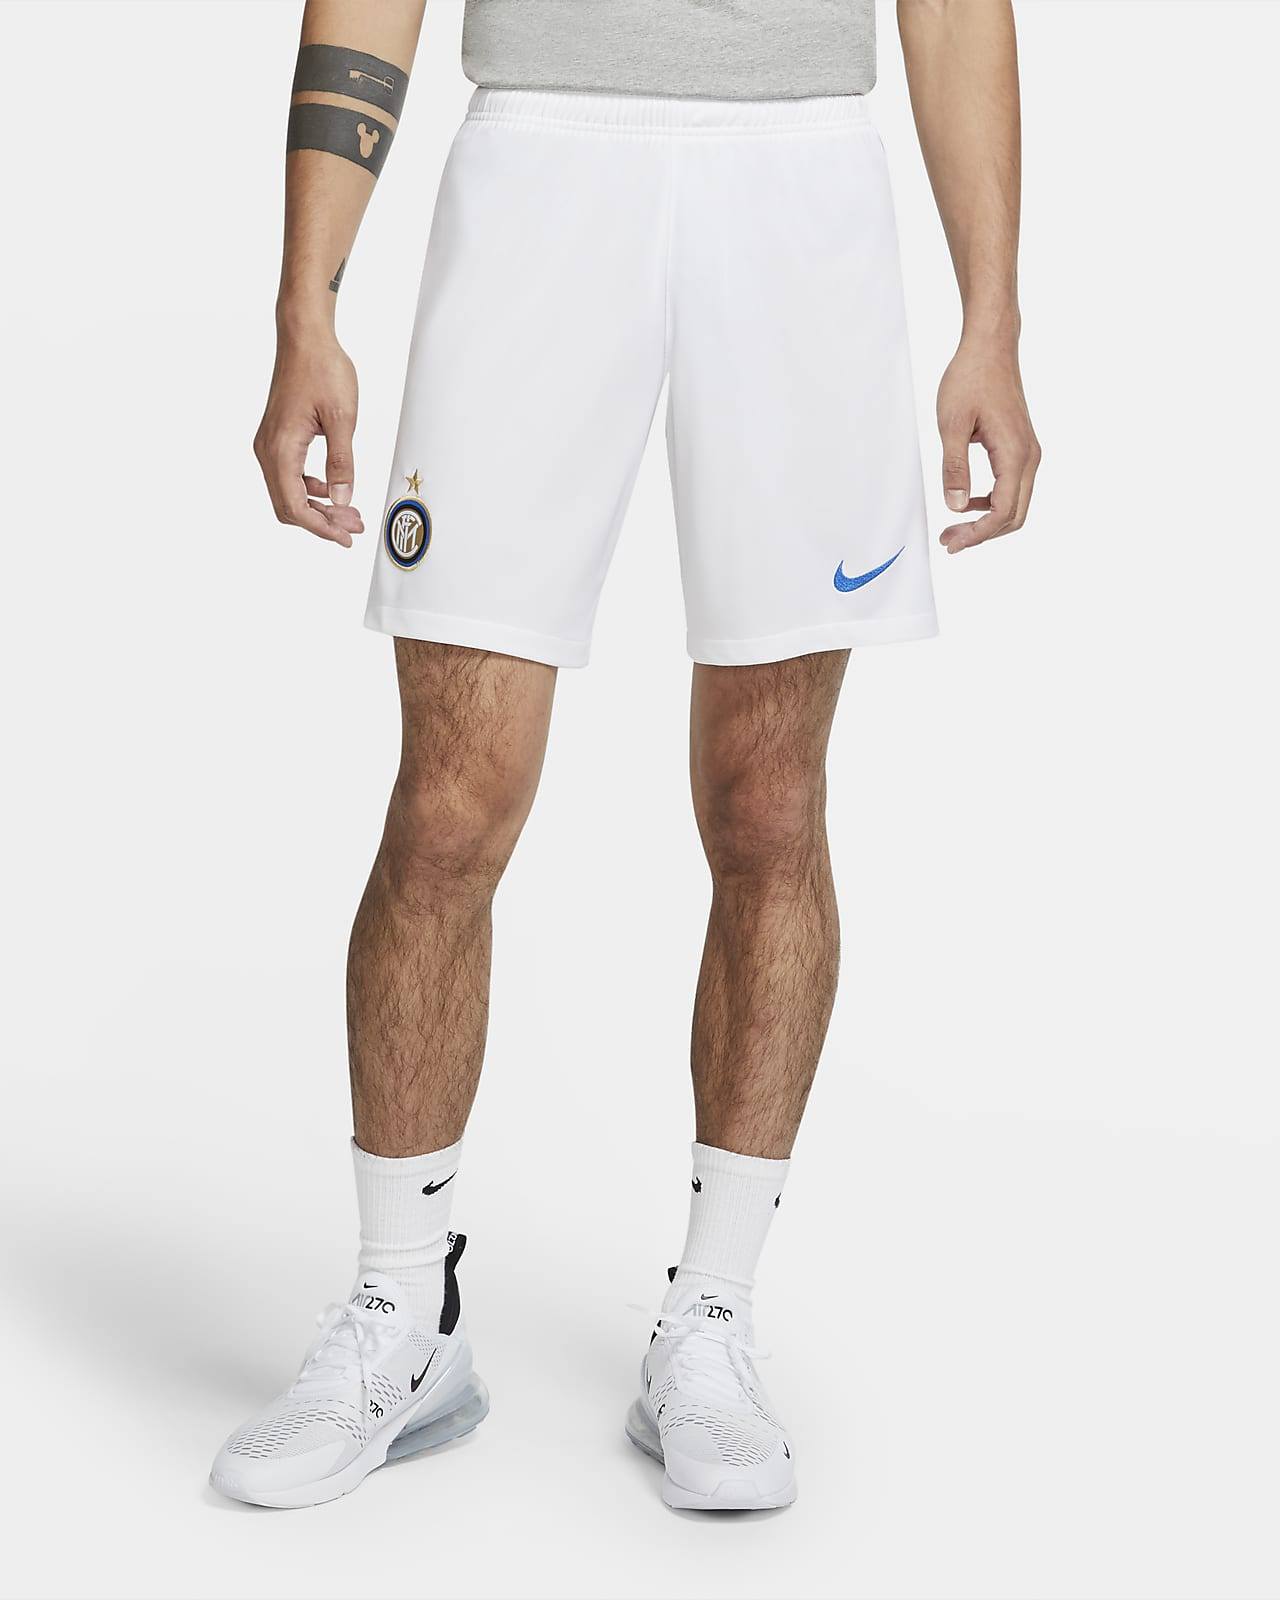 Inter Milan 2020/21 Stadium Home/Away Men's Football Shorts